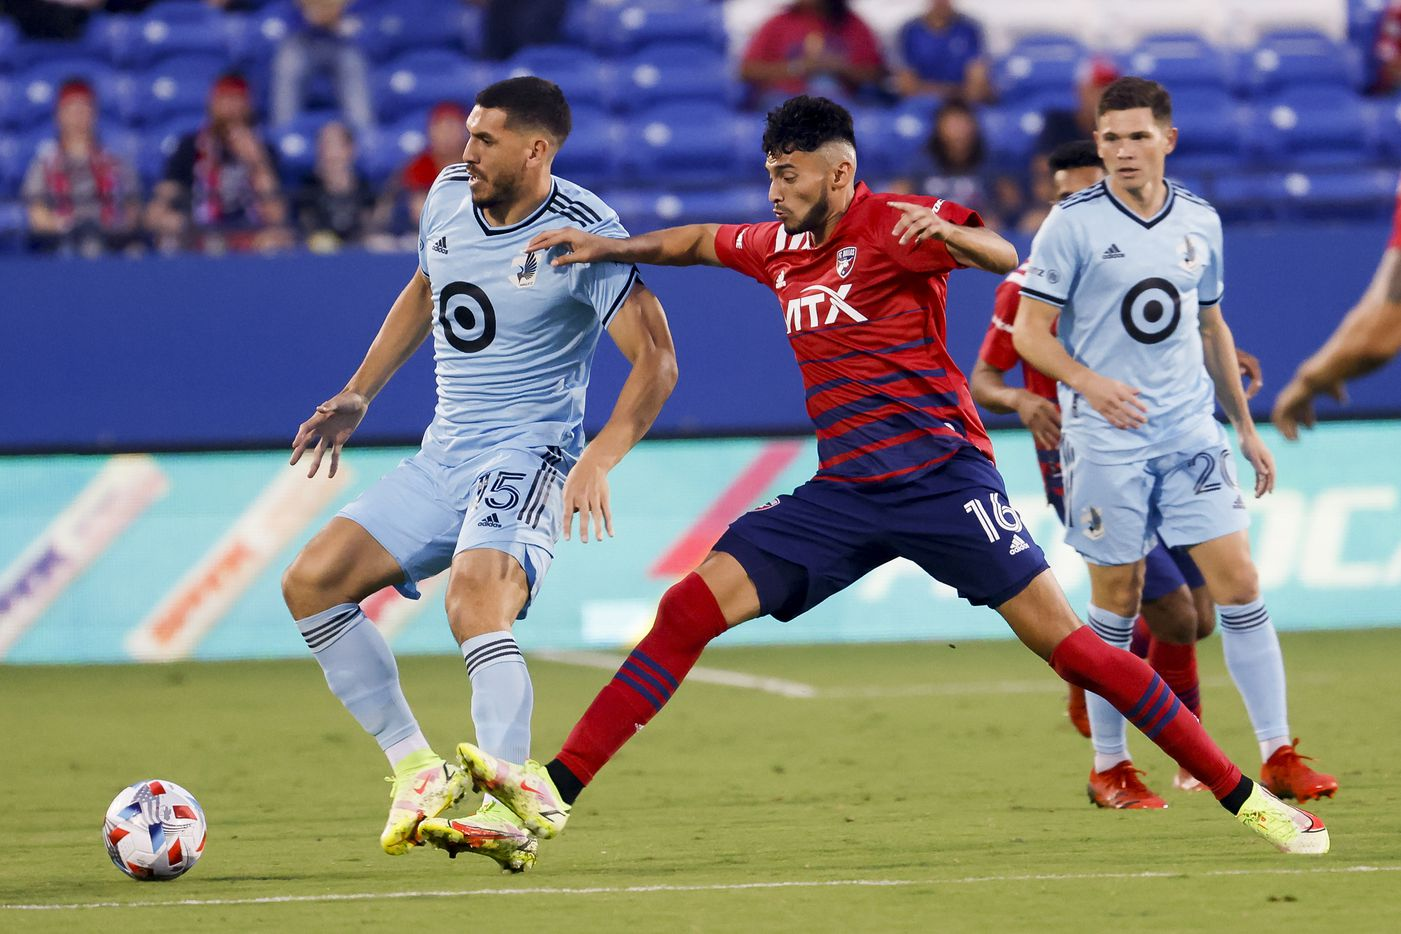 FC Dallas forward Ricardo Pepi (16) goes for the ball against Minnesota United defender Michael Boxall (15) during the first half of a game on Saturday, Oct. 2, 2021, at Toyota Stadium in Frisco. (Juan Figueroa/The Dallas Morning News)